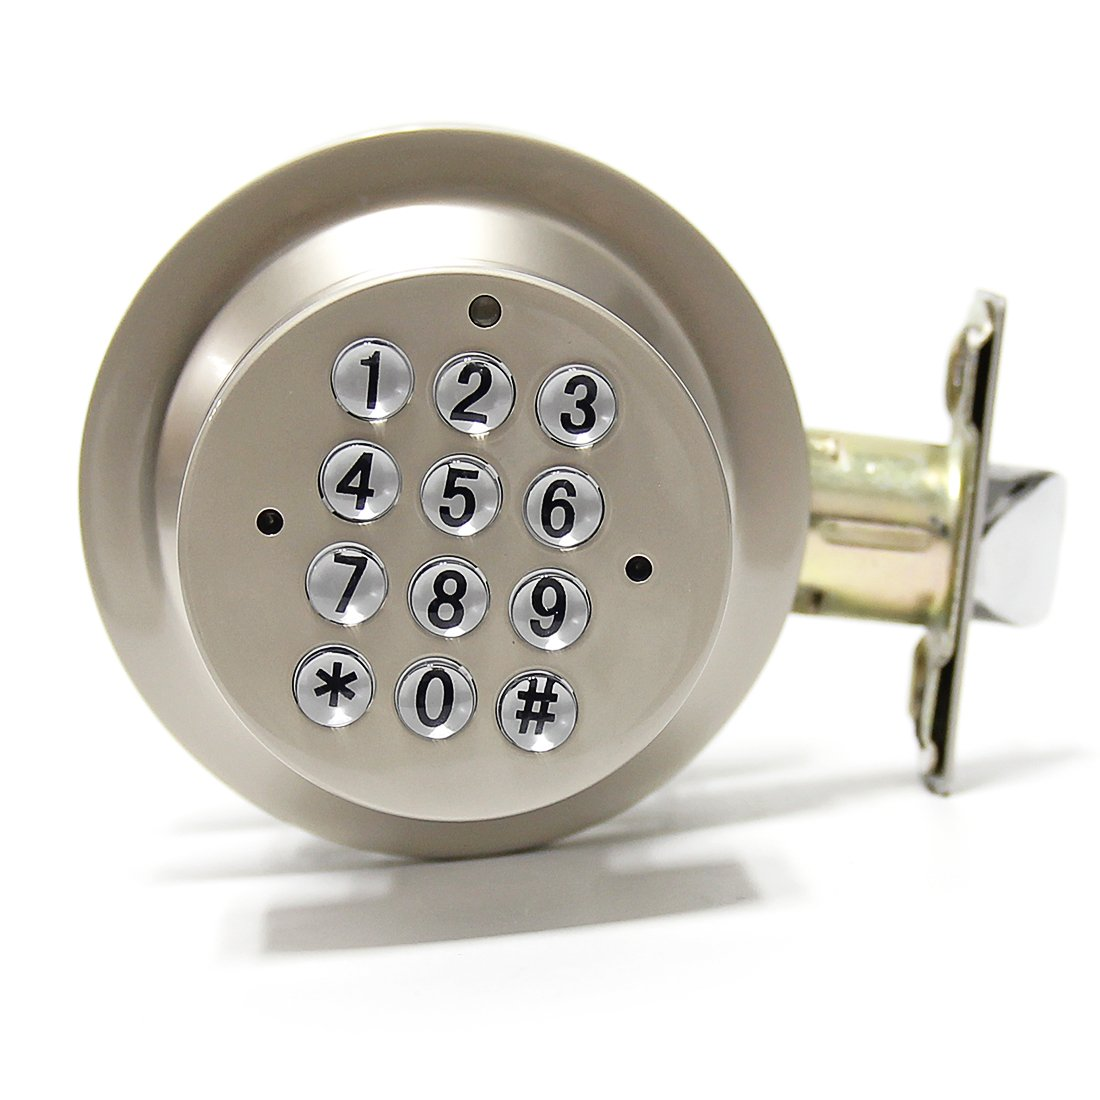 Signstek Keyless Door Knob Lock with Keypad,Grey